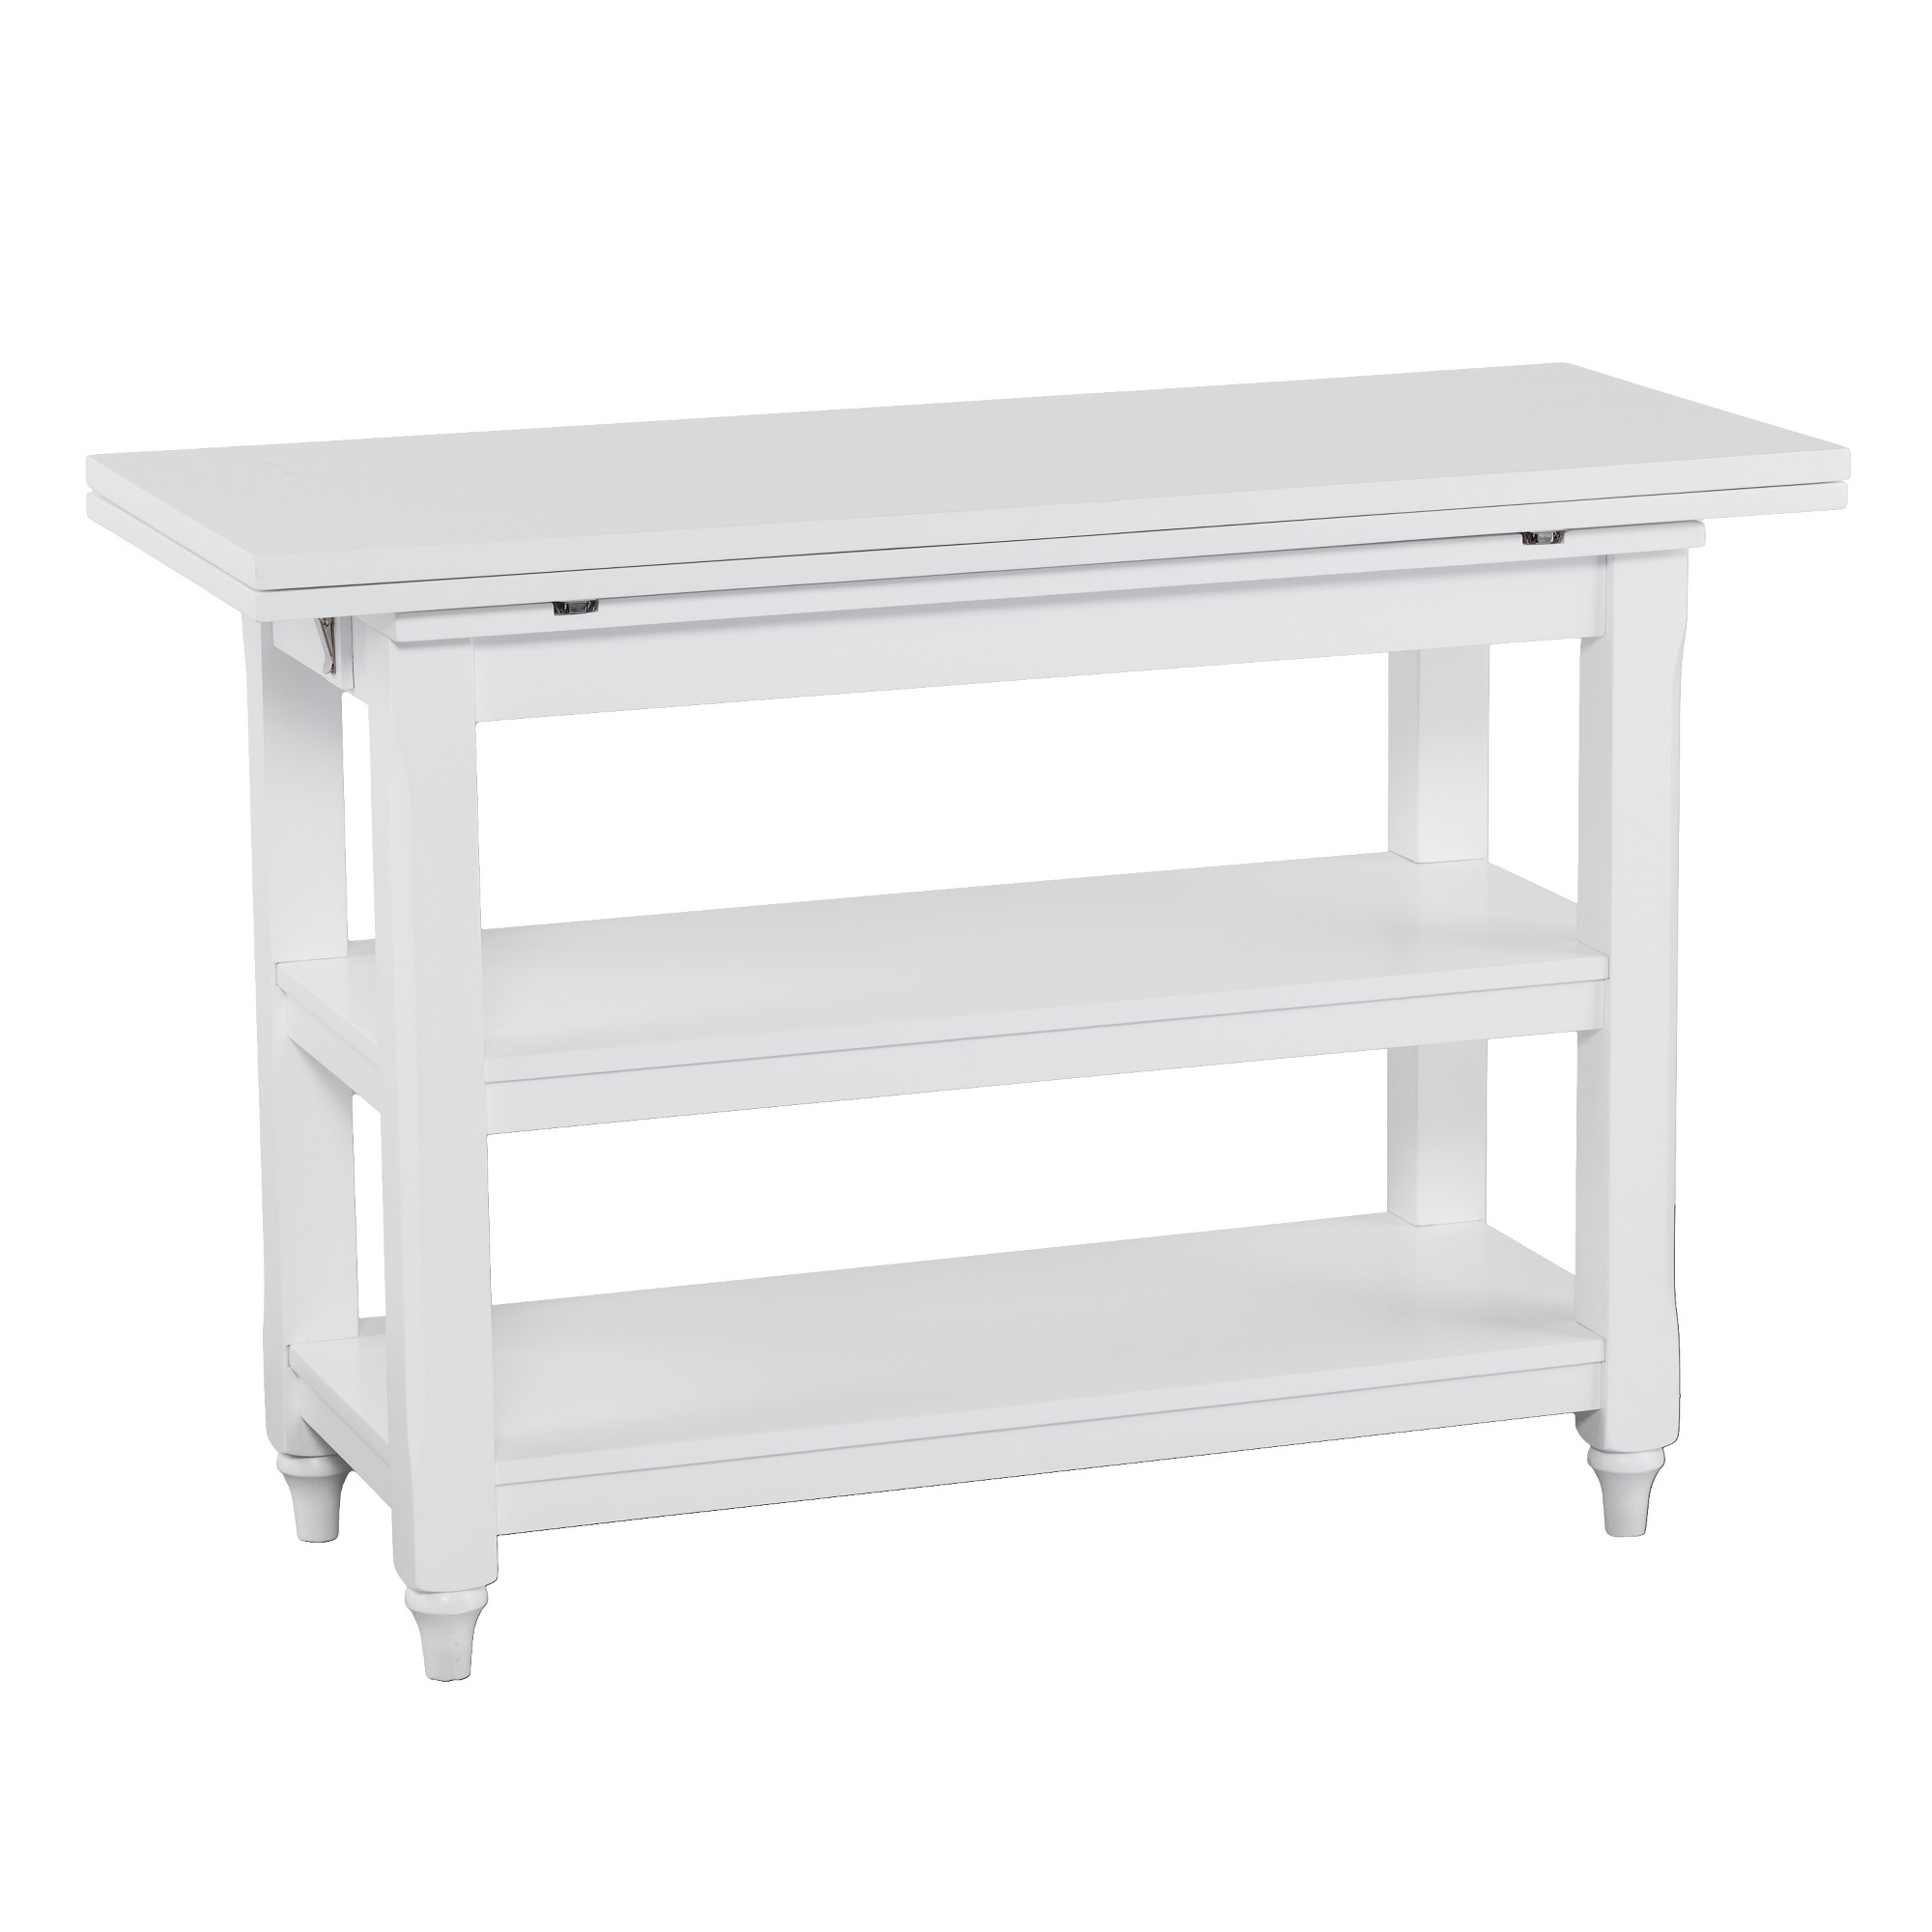 Console Convertible Table Alby Convertible Console To Dining Table White Aiden Lane